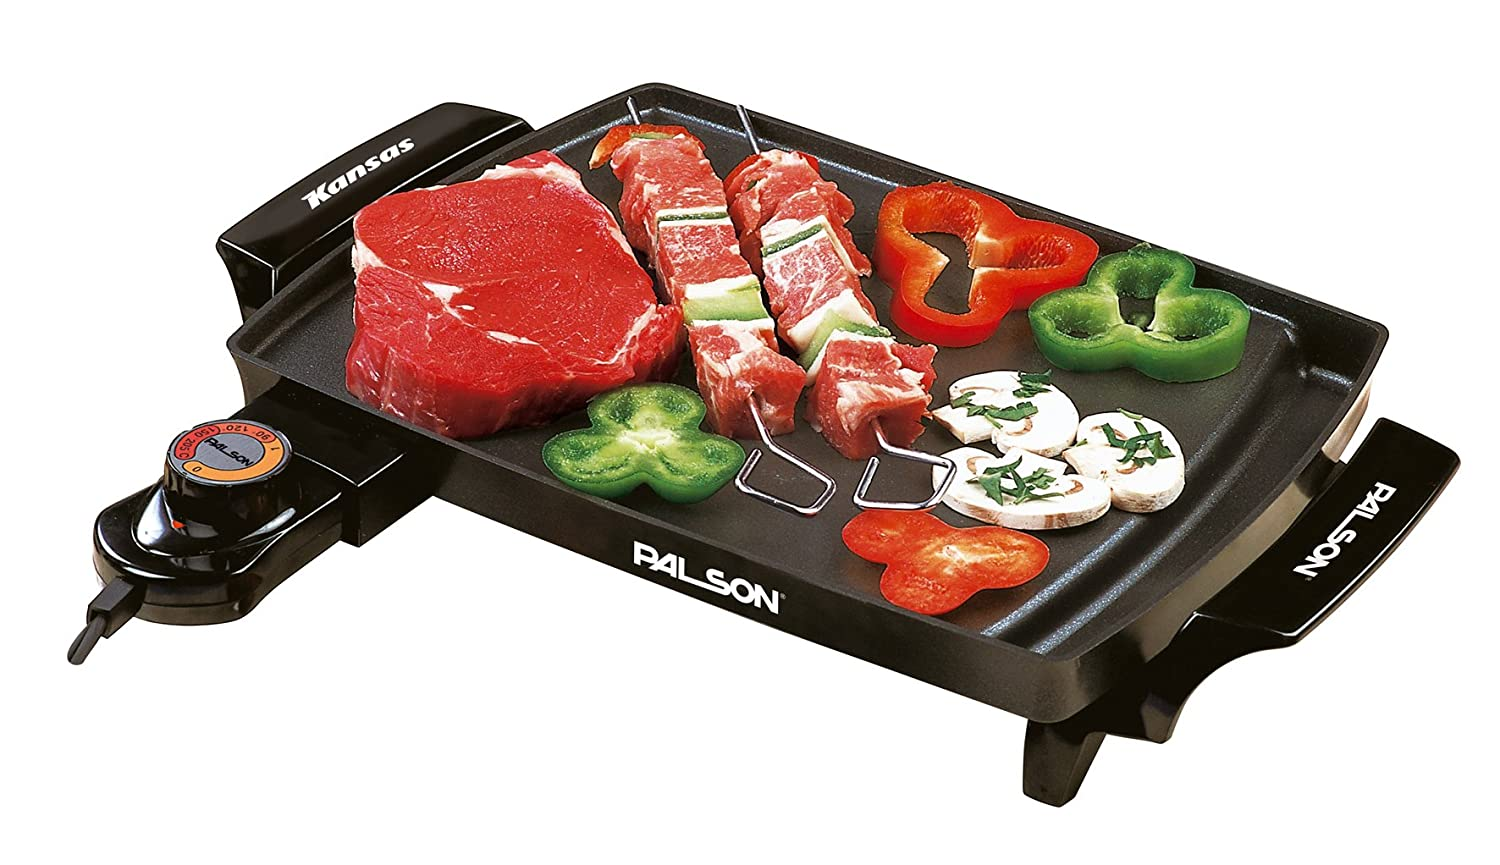 Palson Kansas Electric Teppanyaki Griddle Mini Grill Hot Plate BBQ Garden Camping - Free 2 Year Warranty 30457 Cookware Griddles Kitchen product